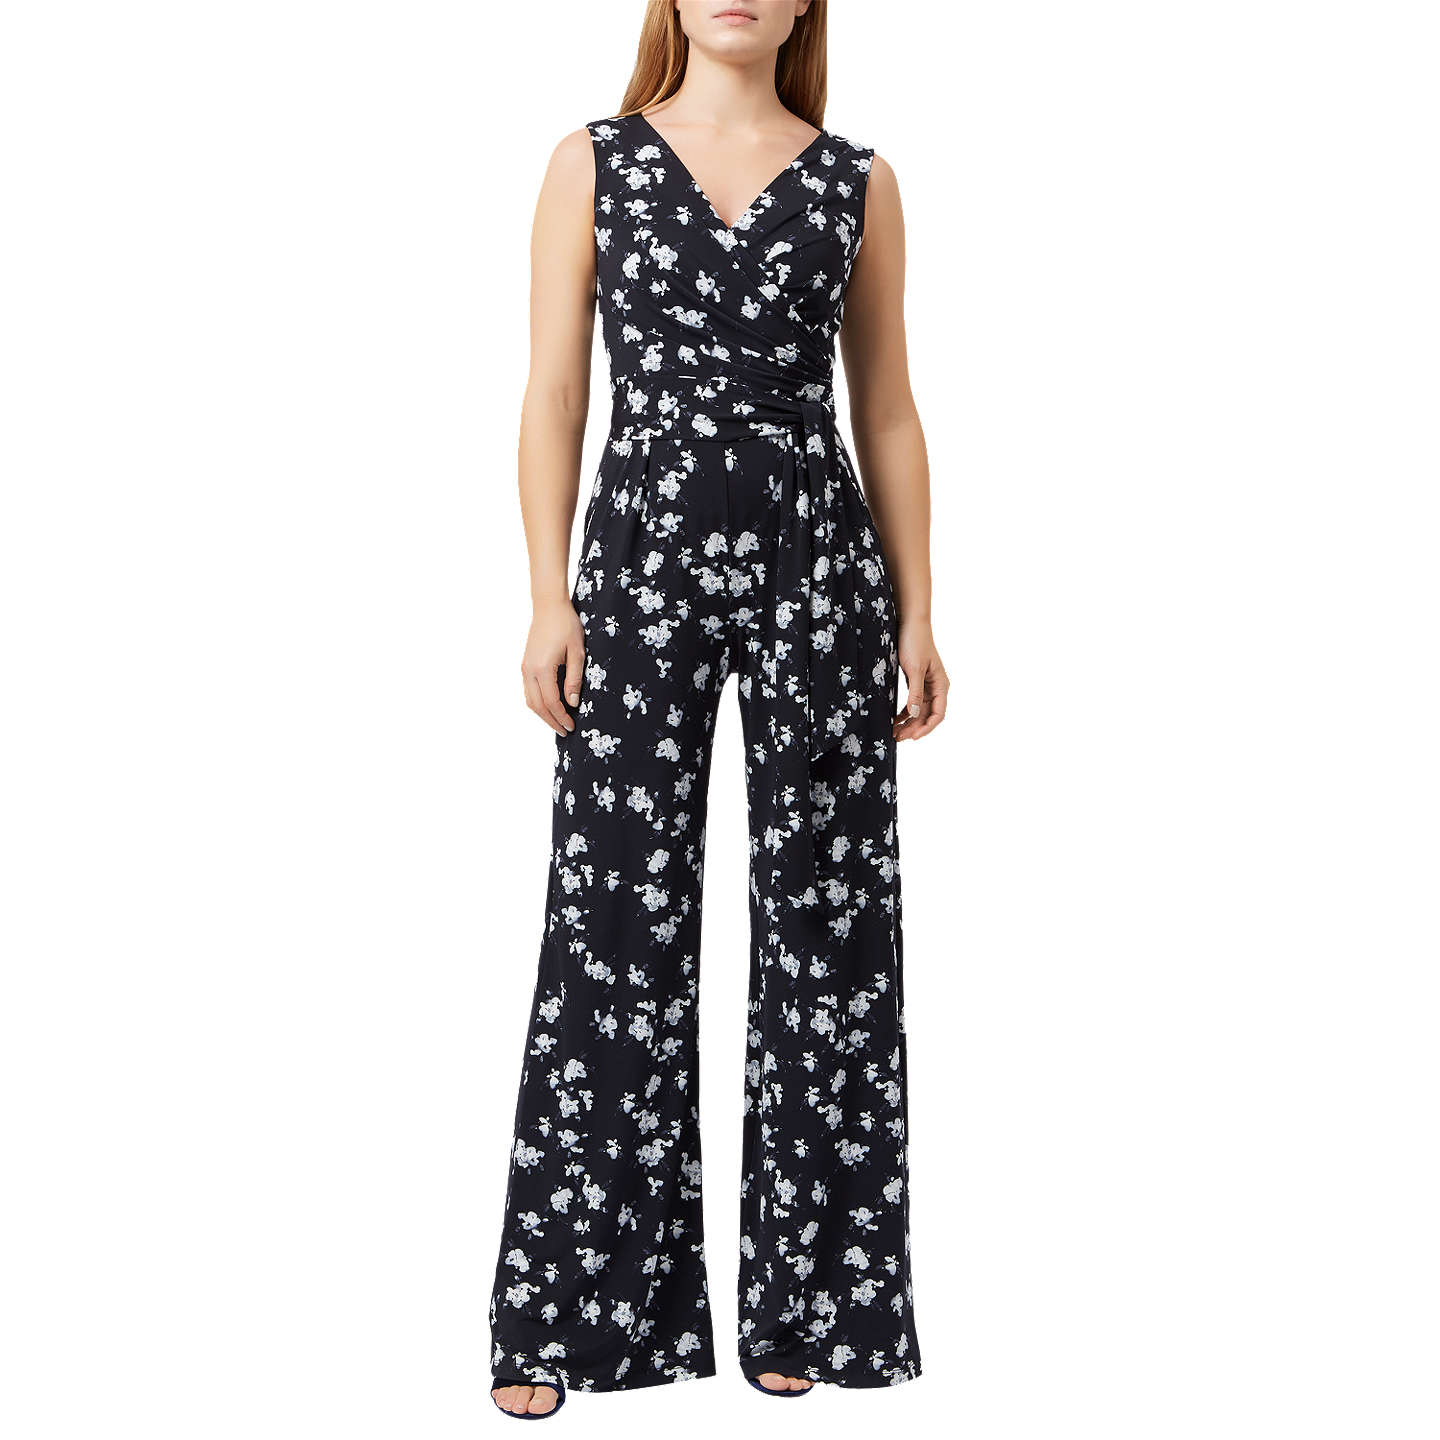 BuyDamsel in a dress Kelsie Jumpsuit, Black, 8 Online at johnlewis.com